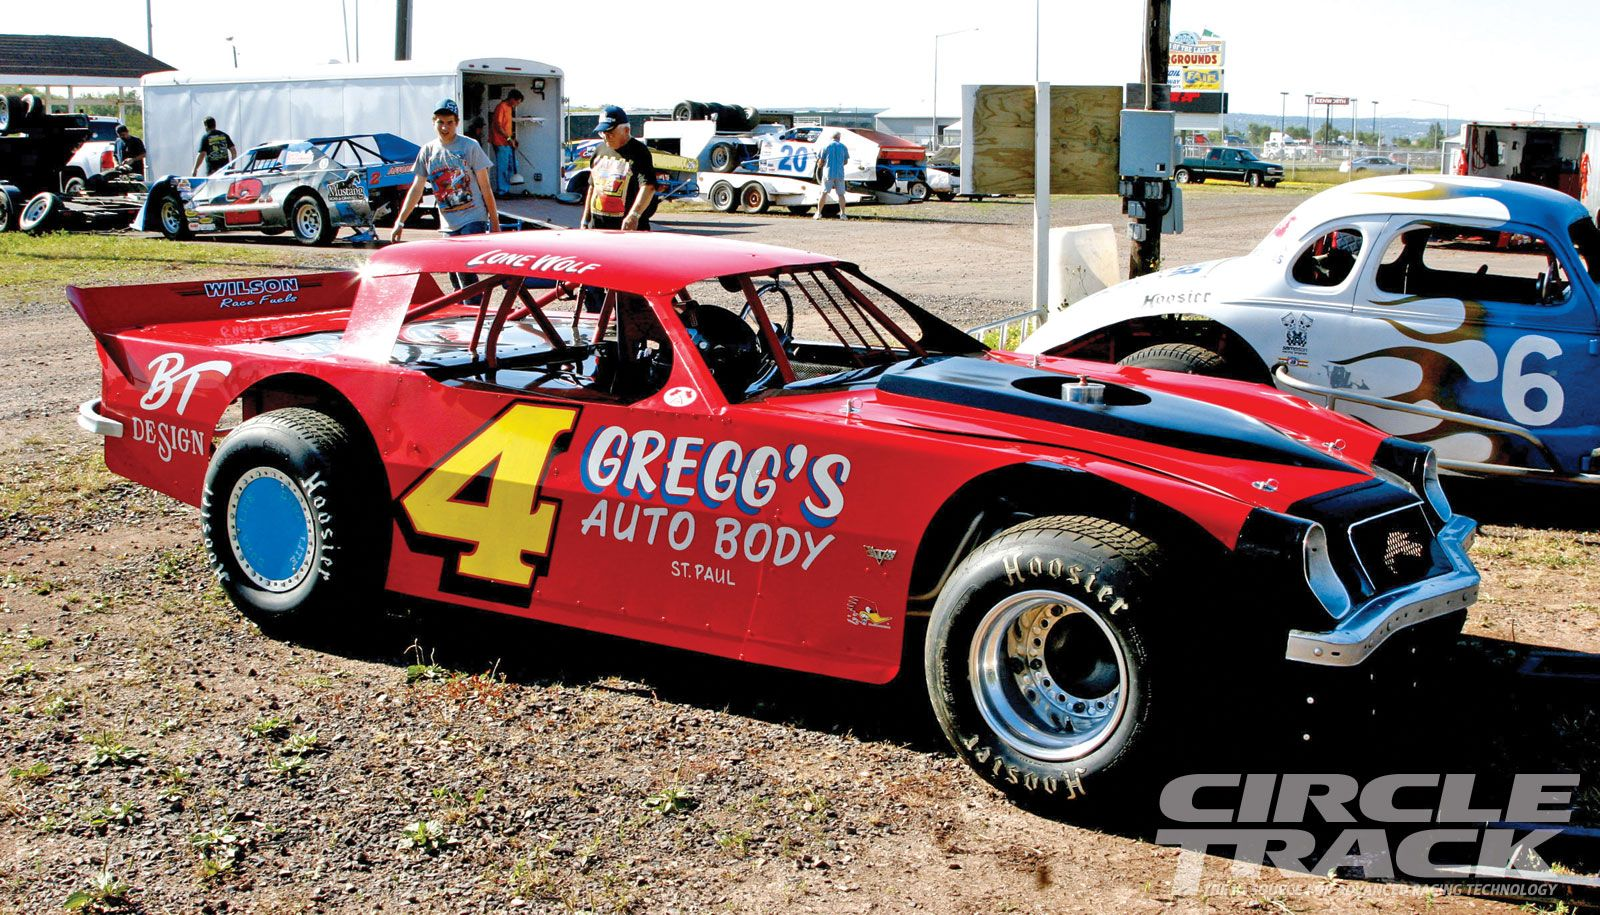 Circle track race car yahoo image search results dirt vehicle asfbconference2016 Image collections